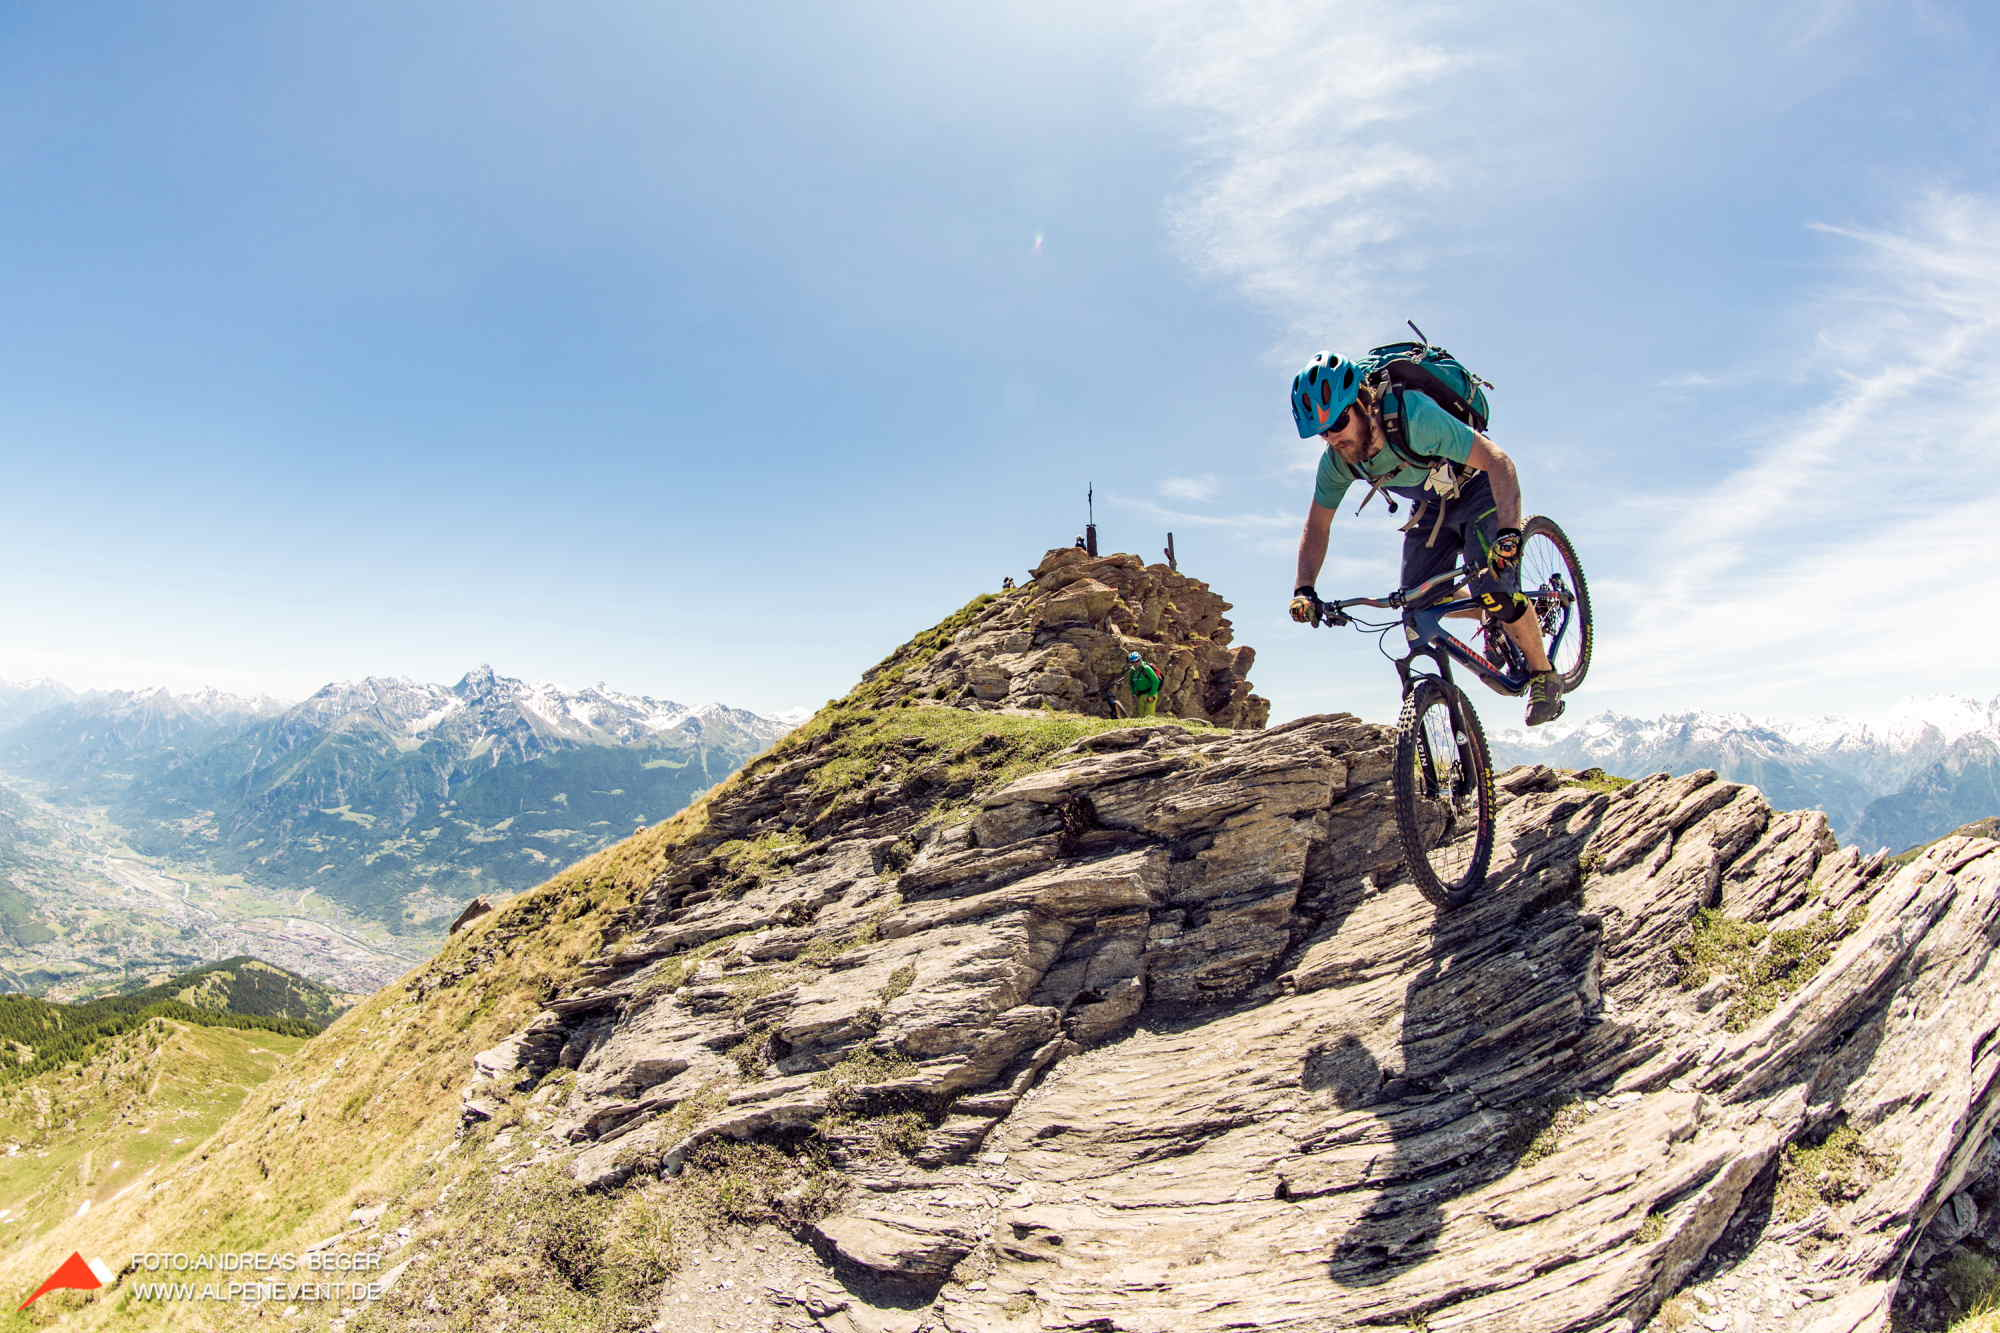 Ride Alpine Trails Mountainbike Freeride & Enduro Camp MTB Enduro Camp Individuelle Tourenbplanung Ride on